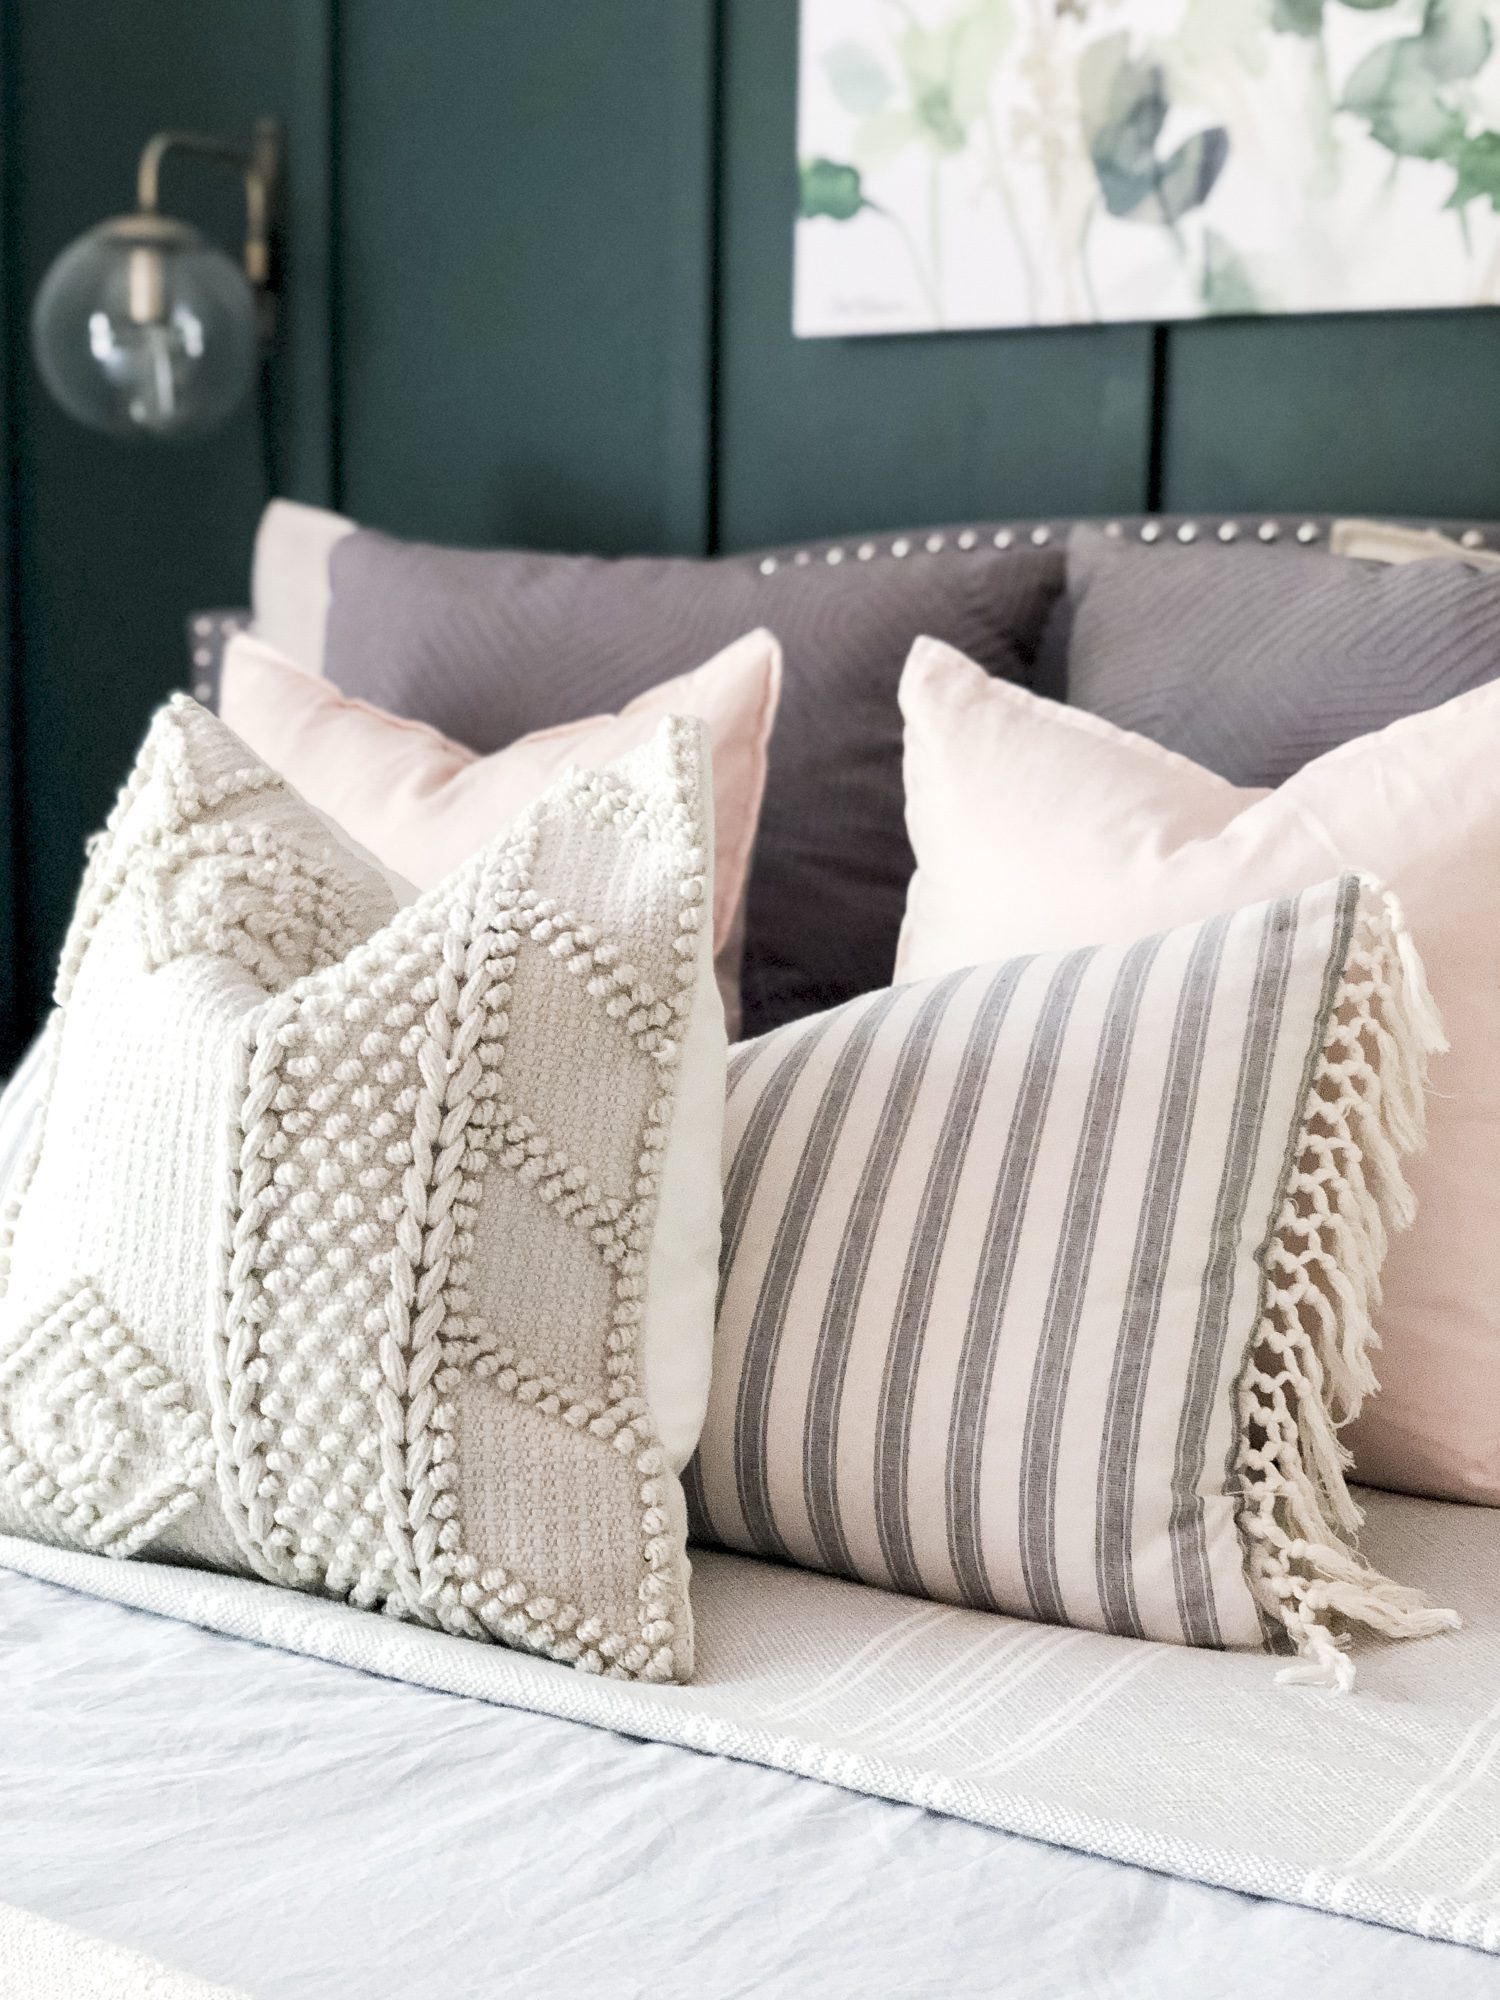 How to layer throw pillows